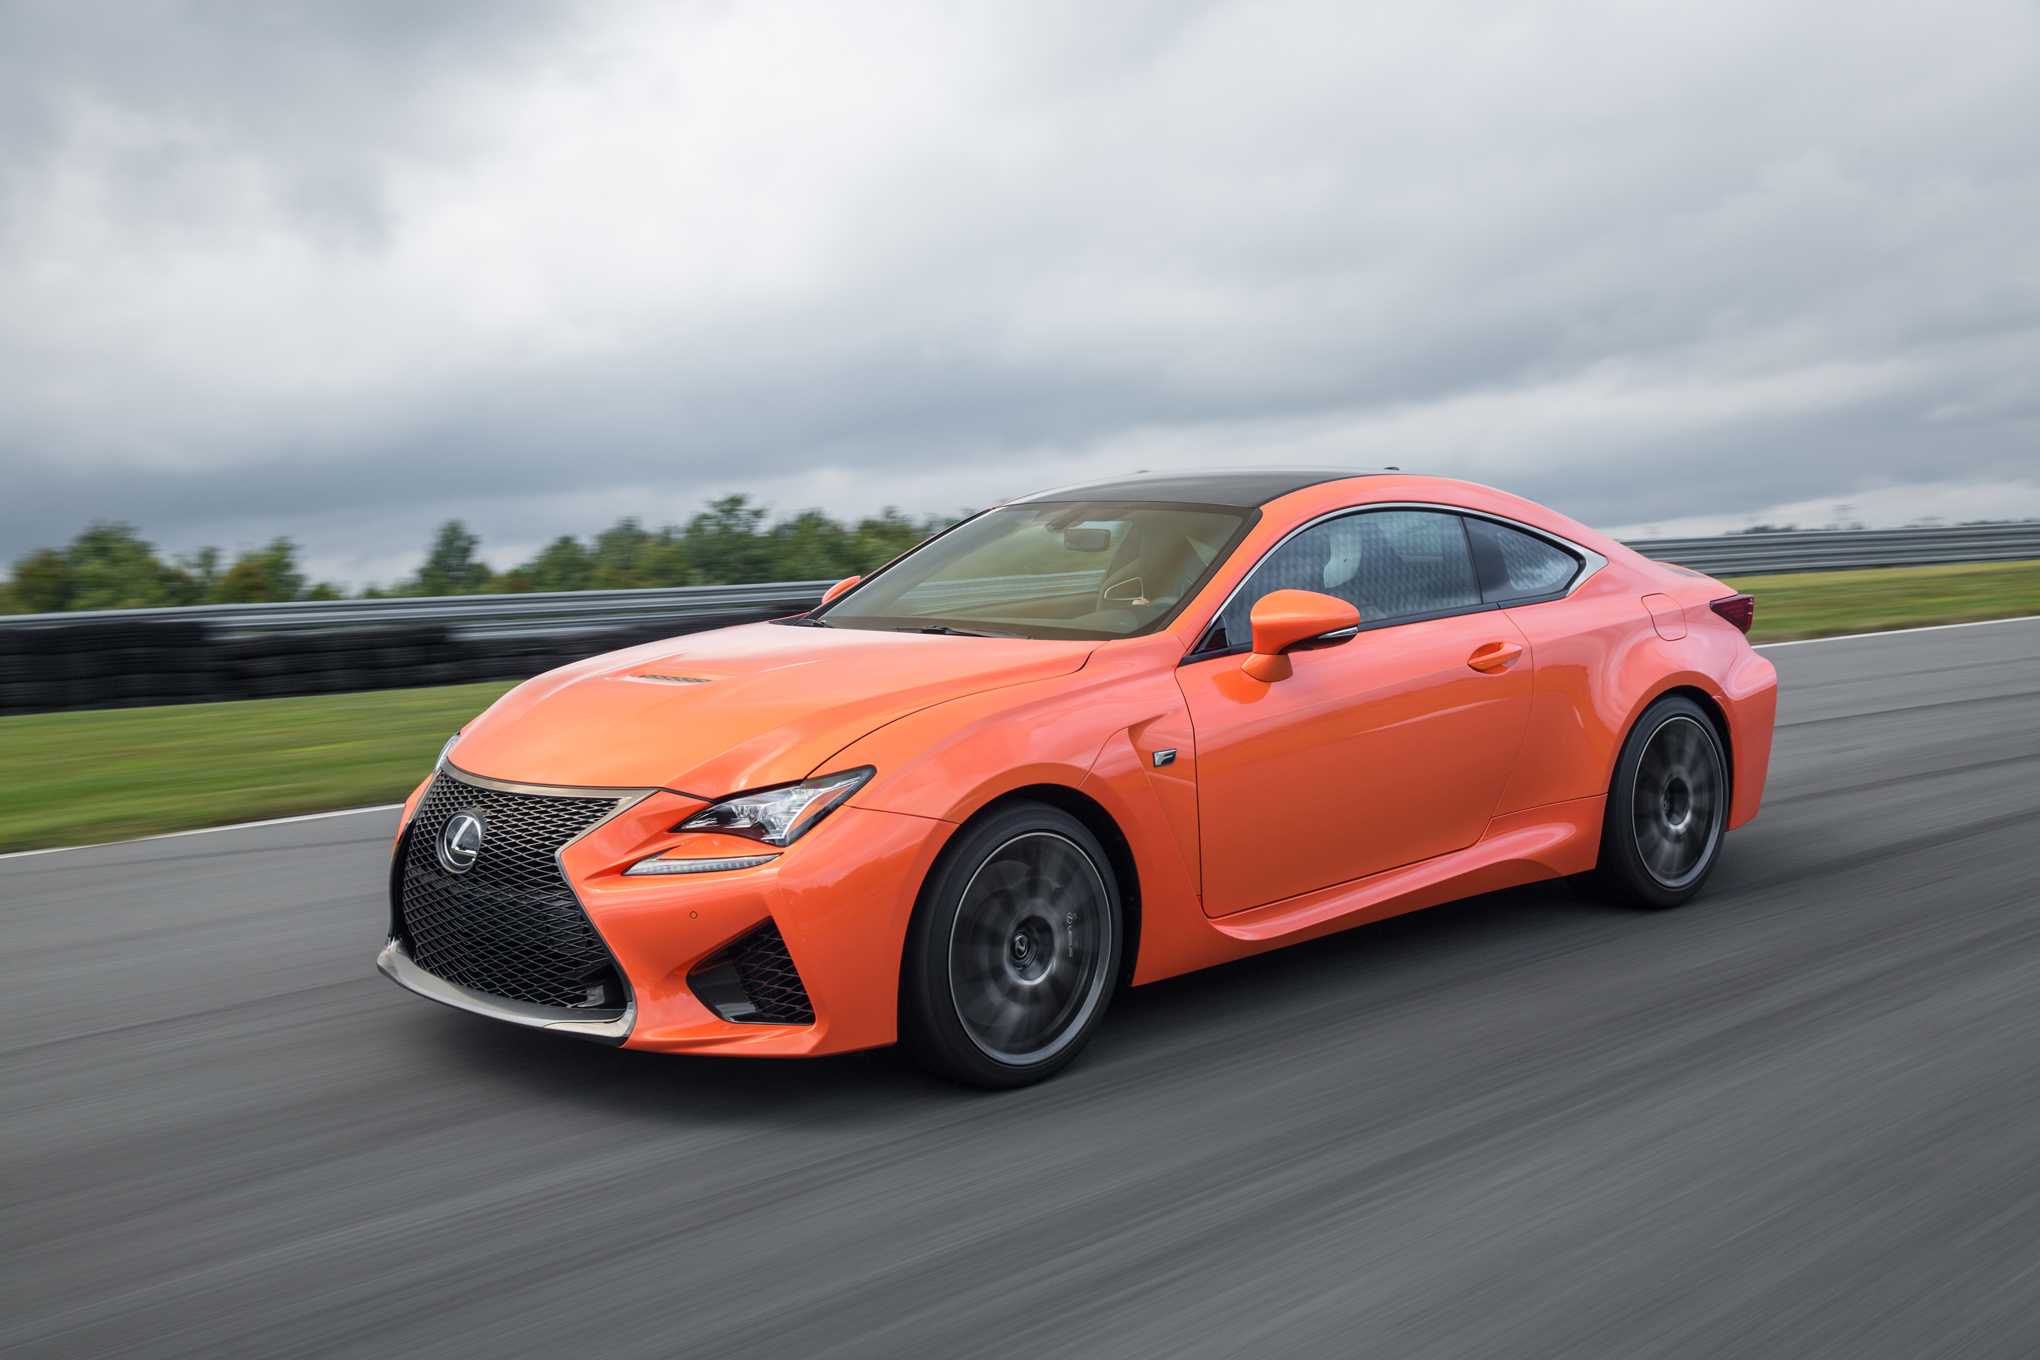 all new 2015 lexus rc f packs 467 horsepower and 63 325 starting price tag. Black Bedroom Furniture Sets. Home Design Ideas